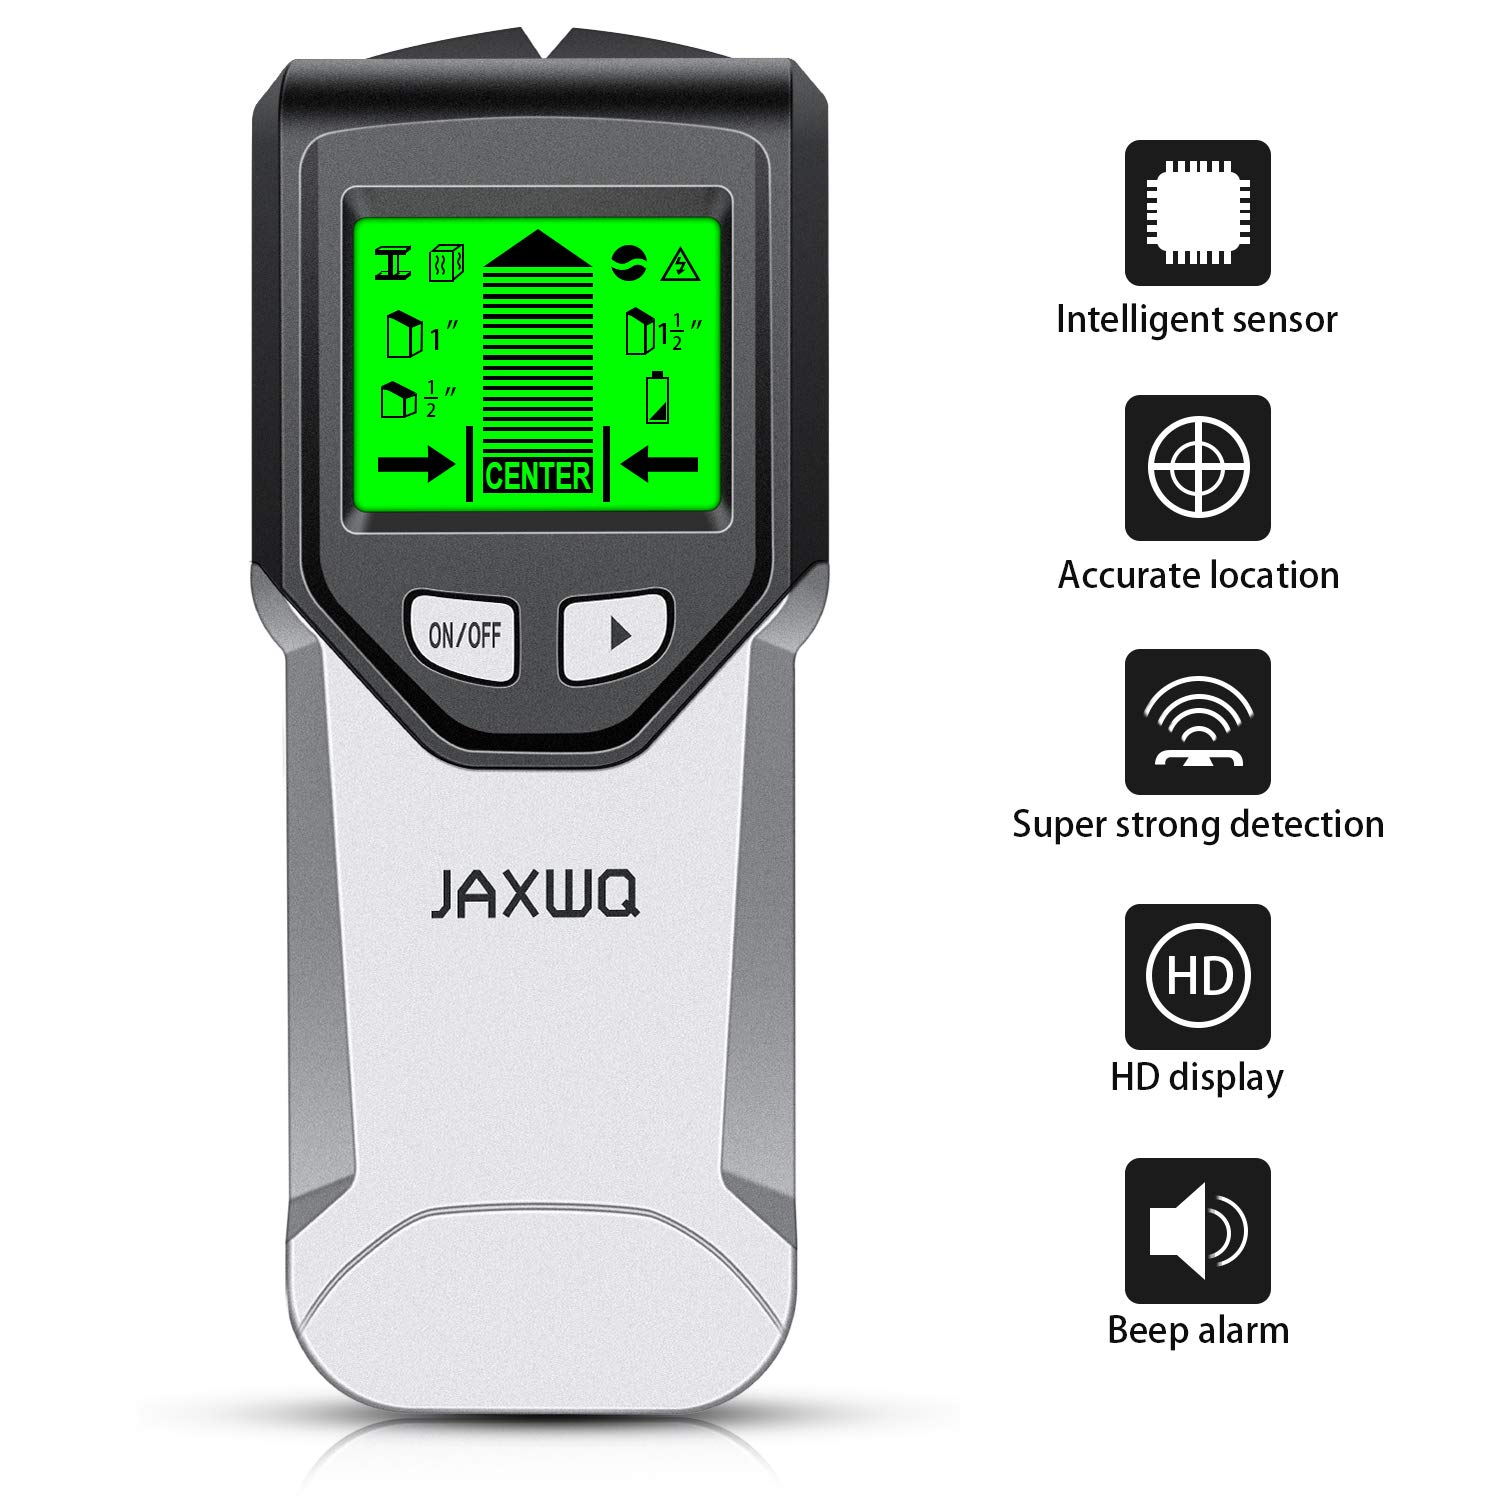 Stud Finder - JAXWQ 5 in 1 Multifunction Wall Scanner with Intelligent Microprocessor chip, HD LCD Display and Audio Alarm, Accurate and Fast Location for the Center and Edge of Metal, Studs, AC wire